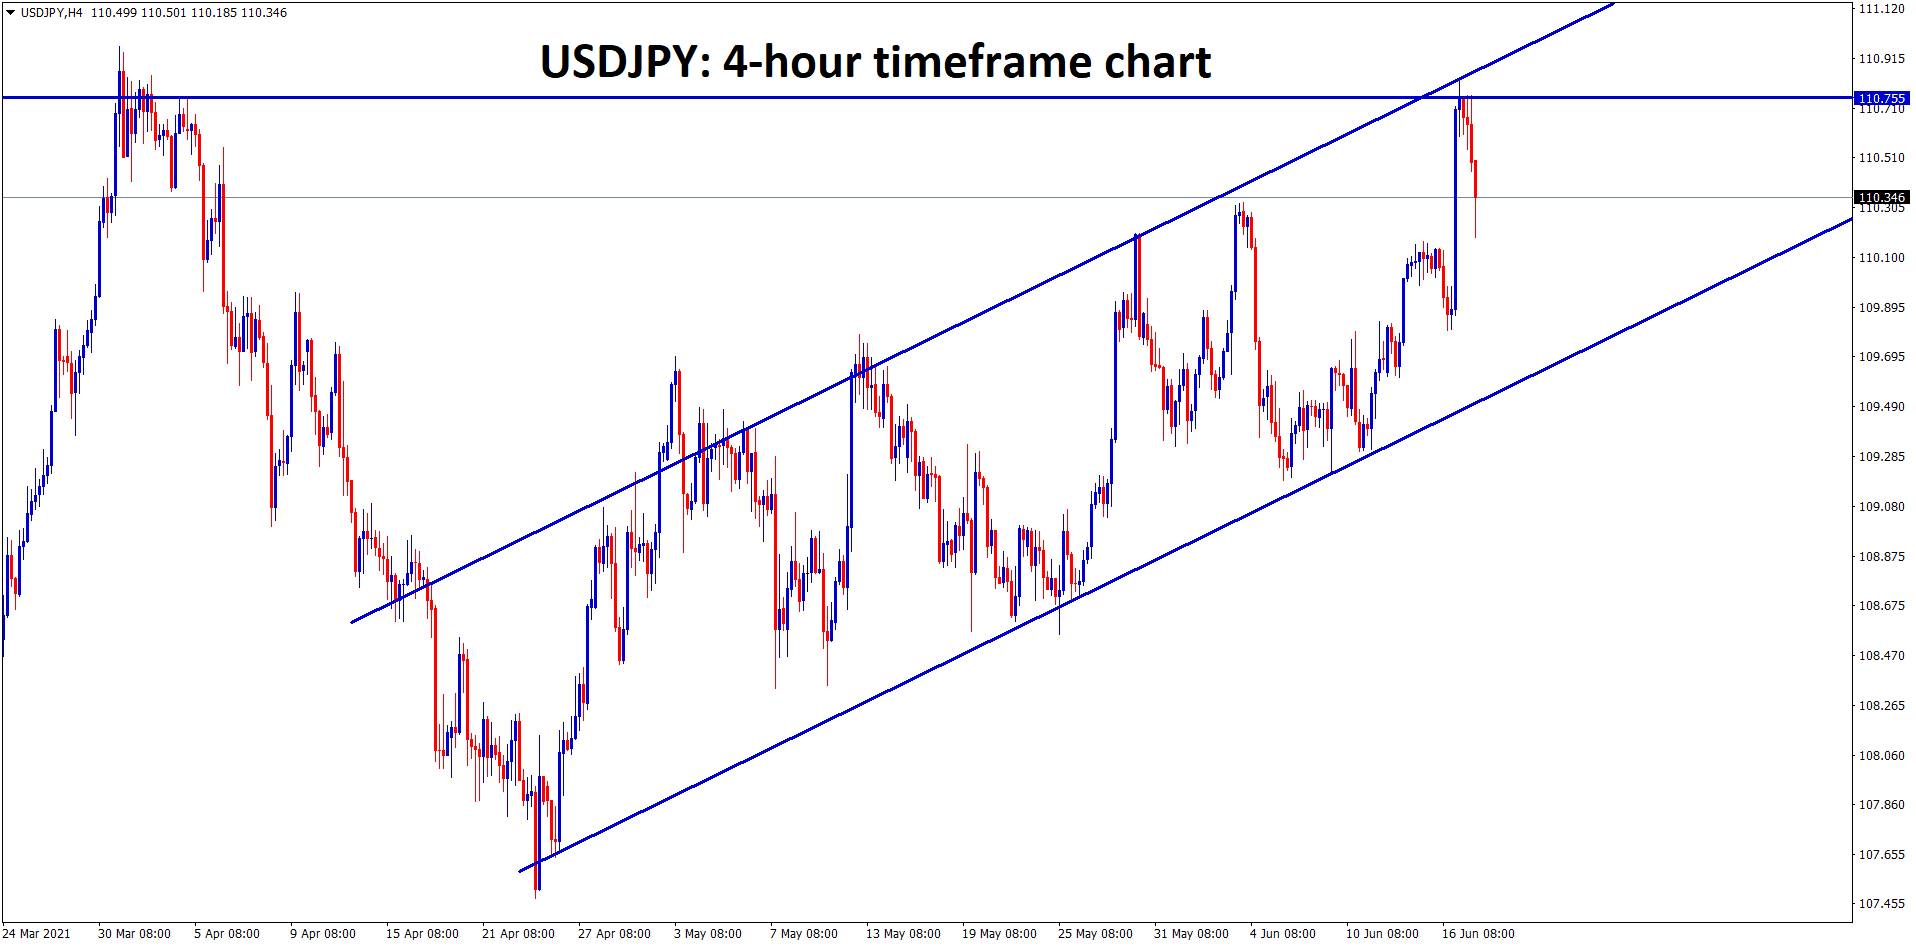 USDJPY making a correction from the major resistance zone. but still moving in an Uptrend Ascending channel